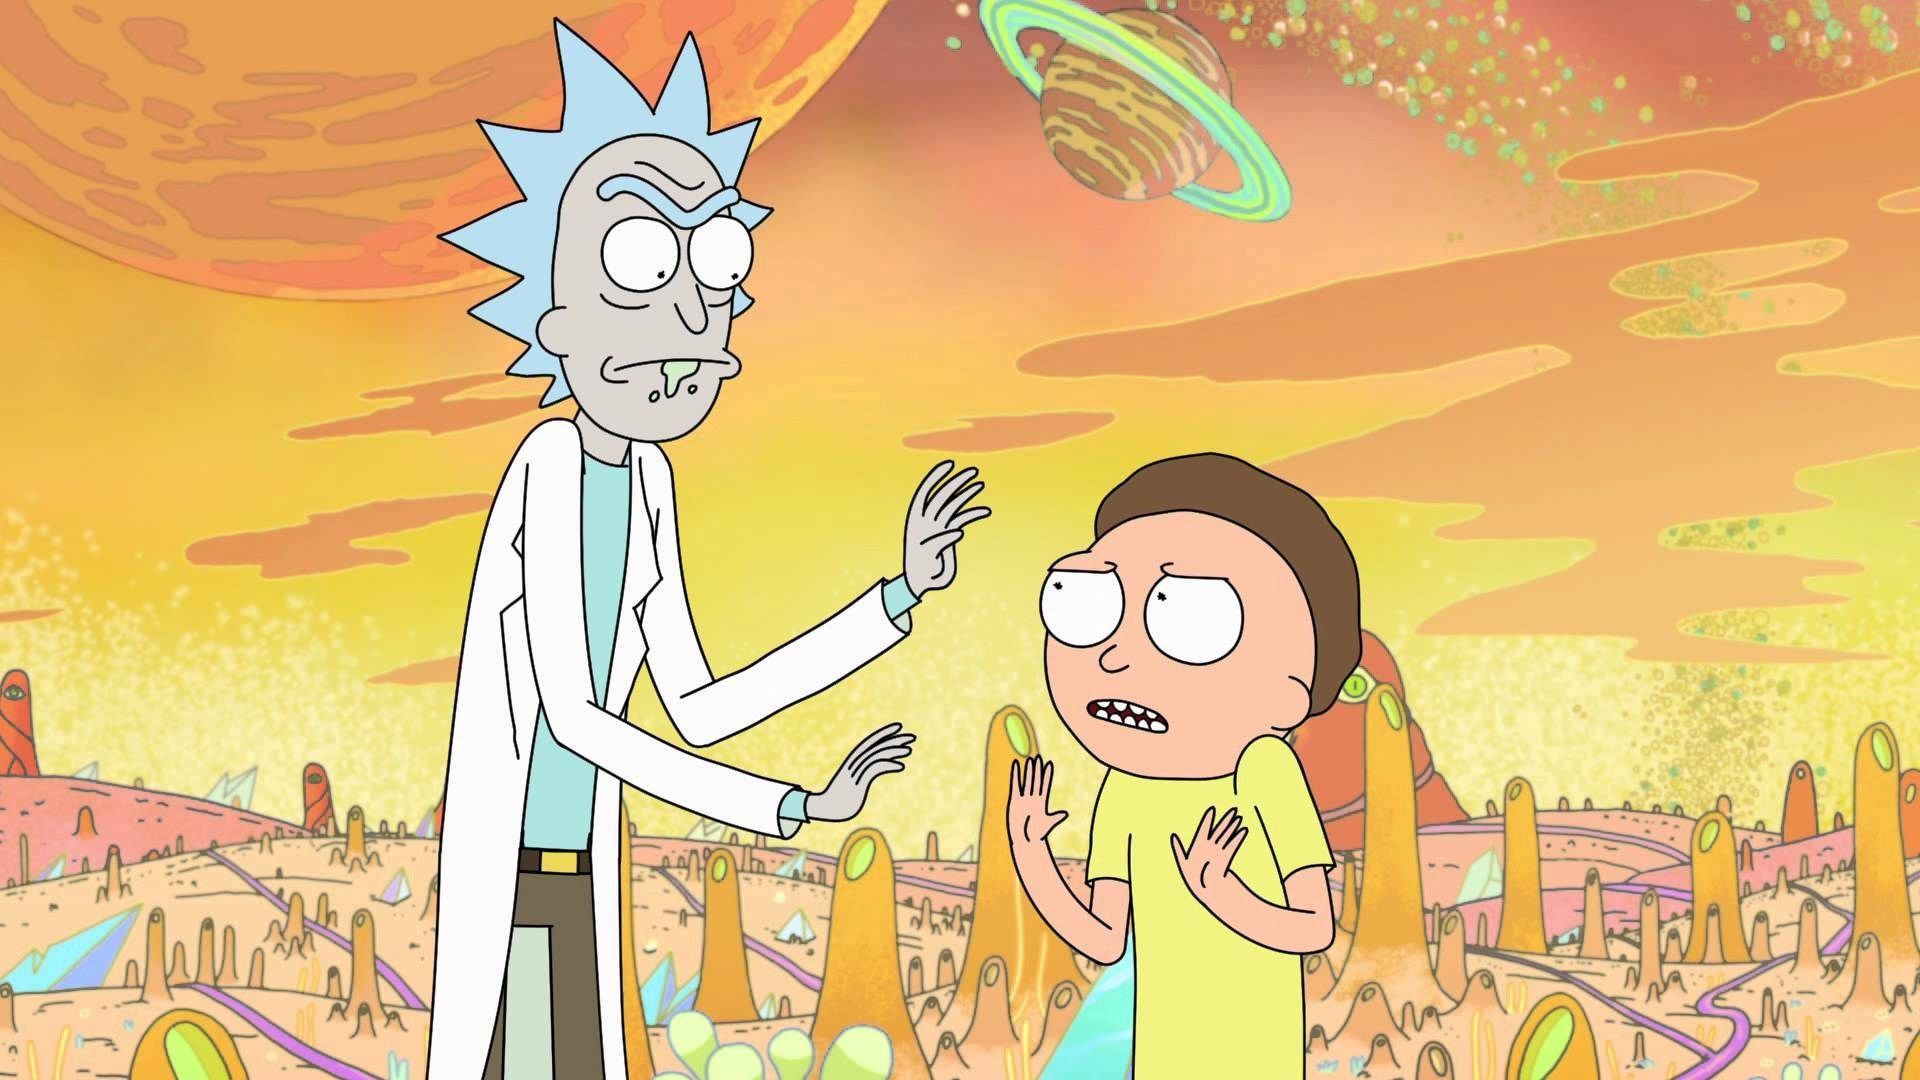 rick and morty images, rick and morty wallpaper pc